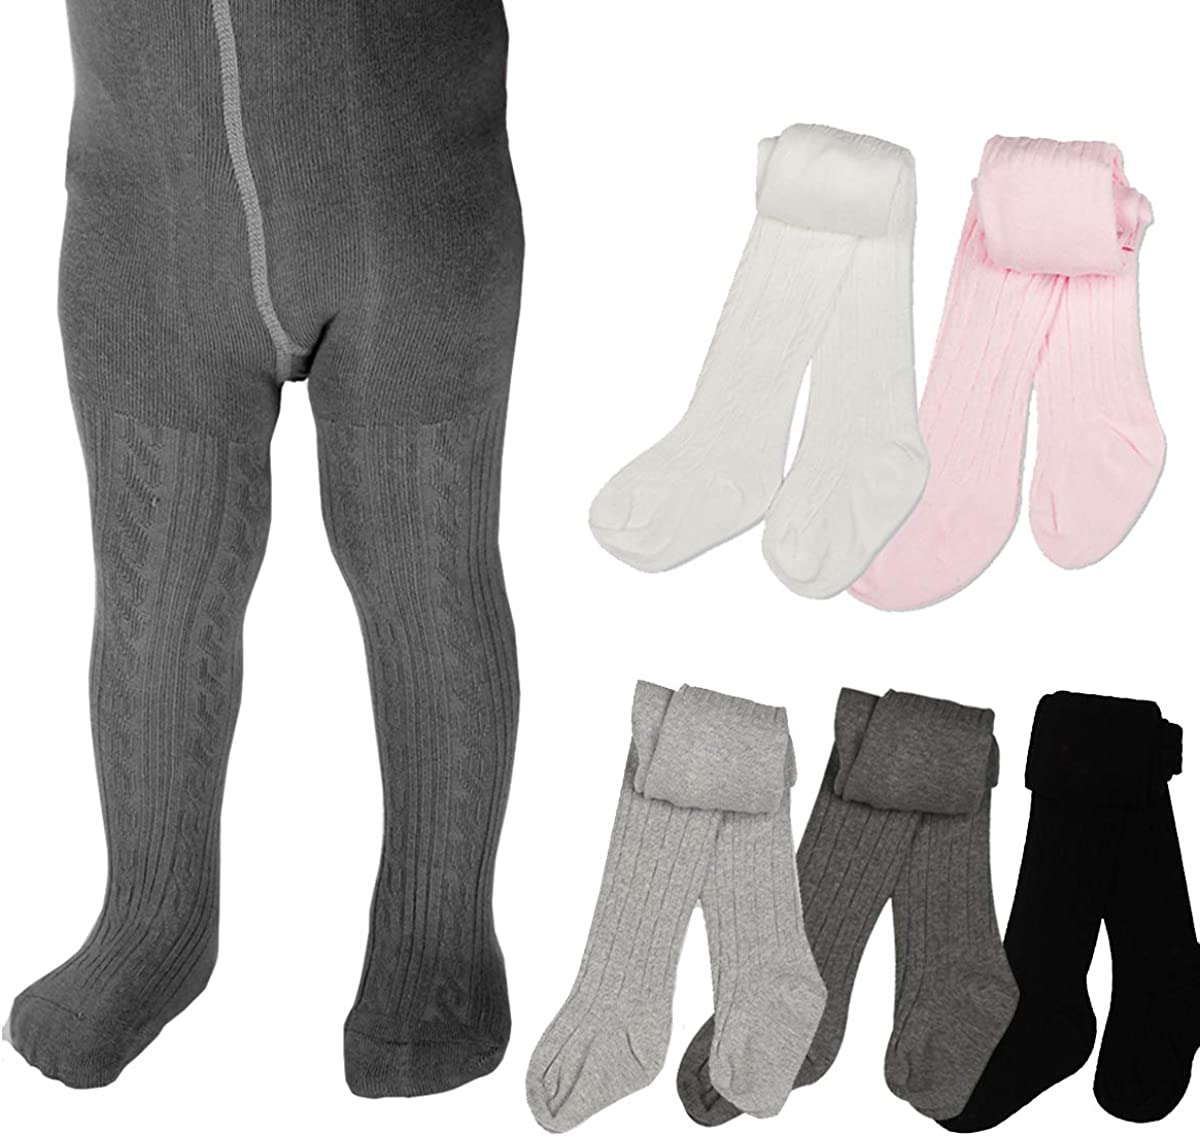 Cotton Cable Knit Leggings Stockings Basic Pantyhose for Infants Toddlers 0-4Years Merqwadd Baby Girls Tights